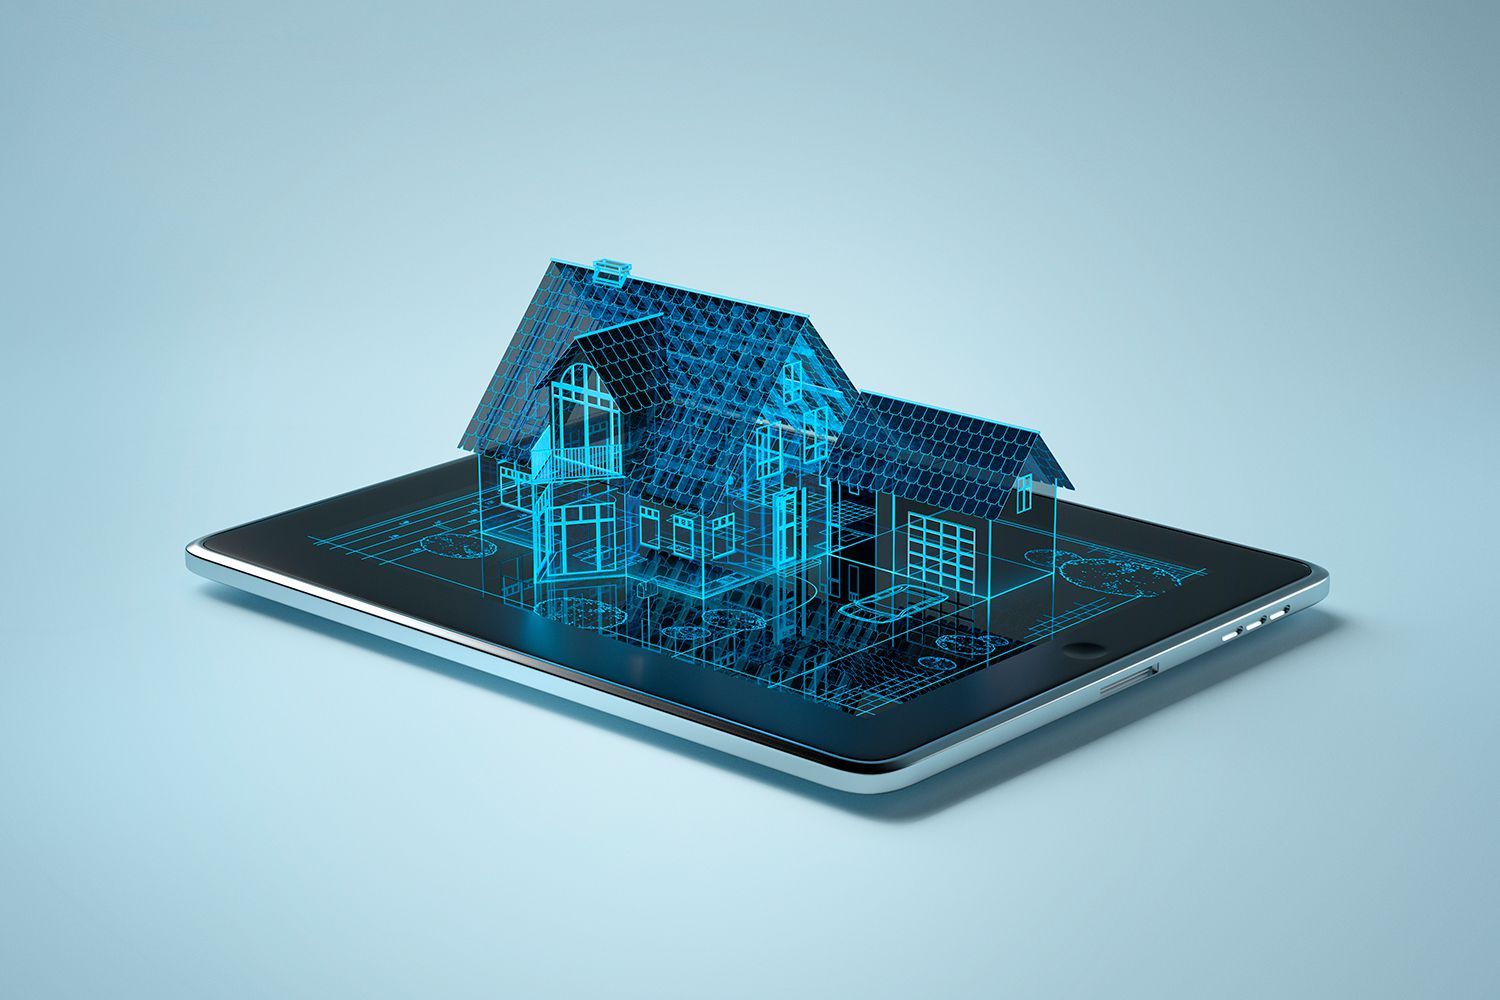 Family house outline sitting on iPad-like tablet